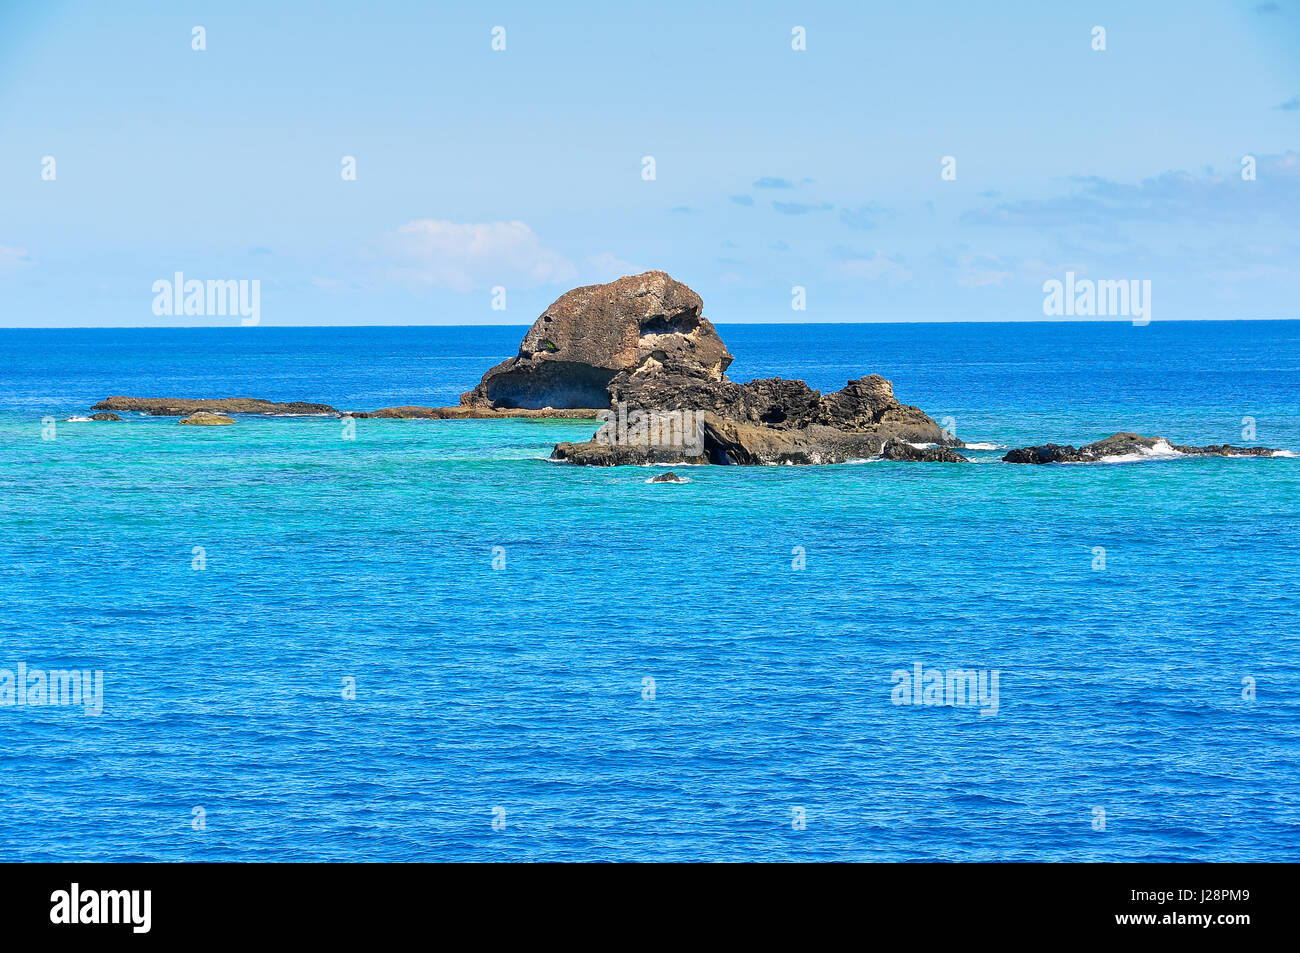 Colorful ocean near the tropical Waya Lailai Island in Fiji - Stock Image